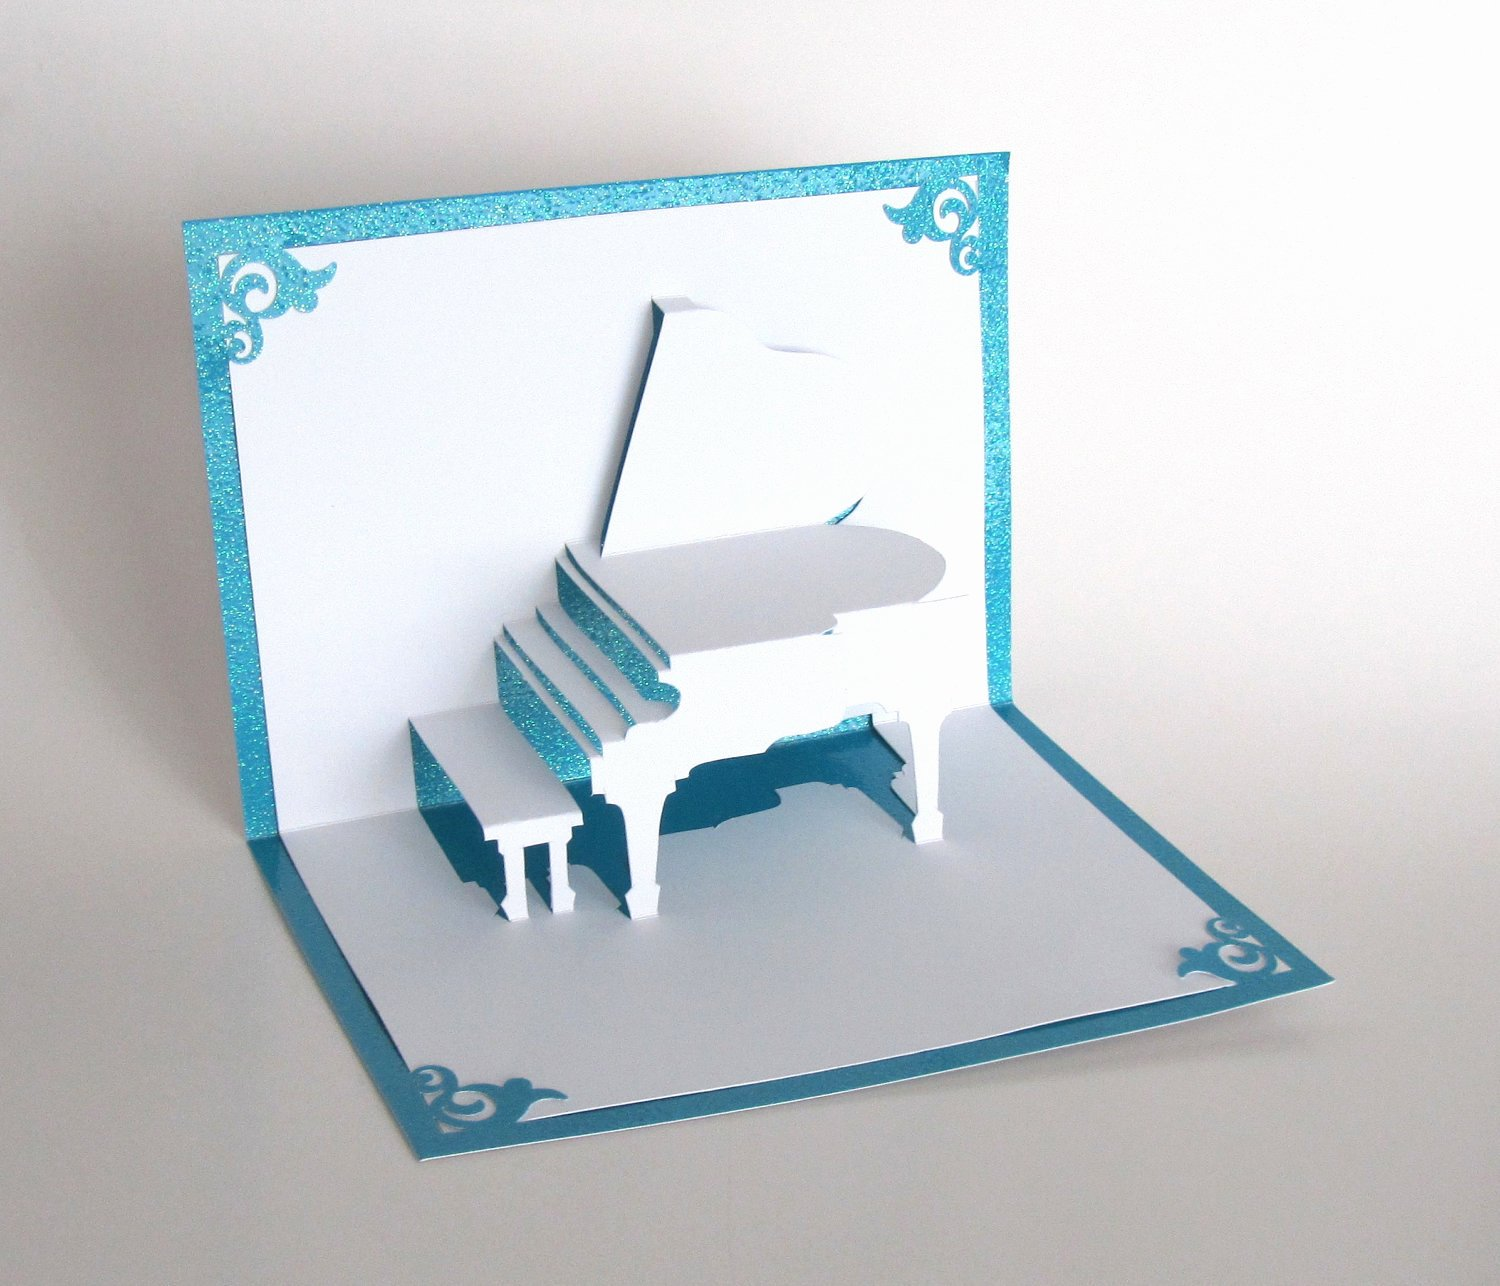 Grand Piano 3d Pop Up Greeting Card Handmade Cut by Hand